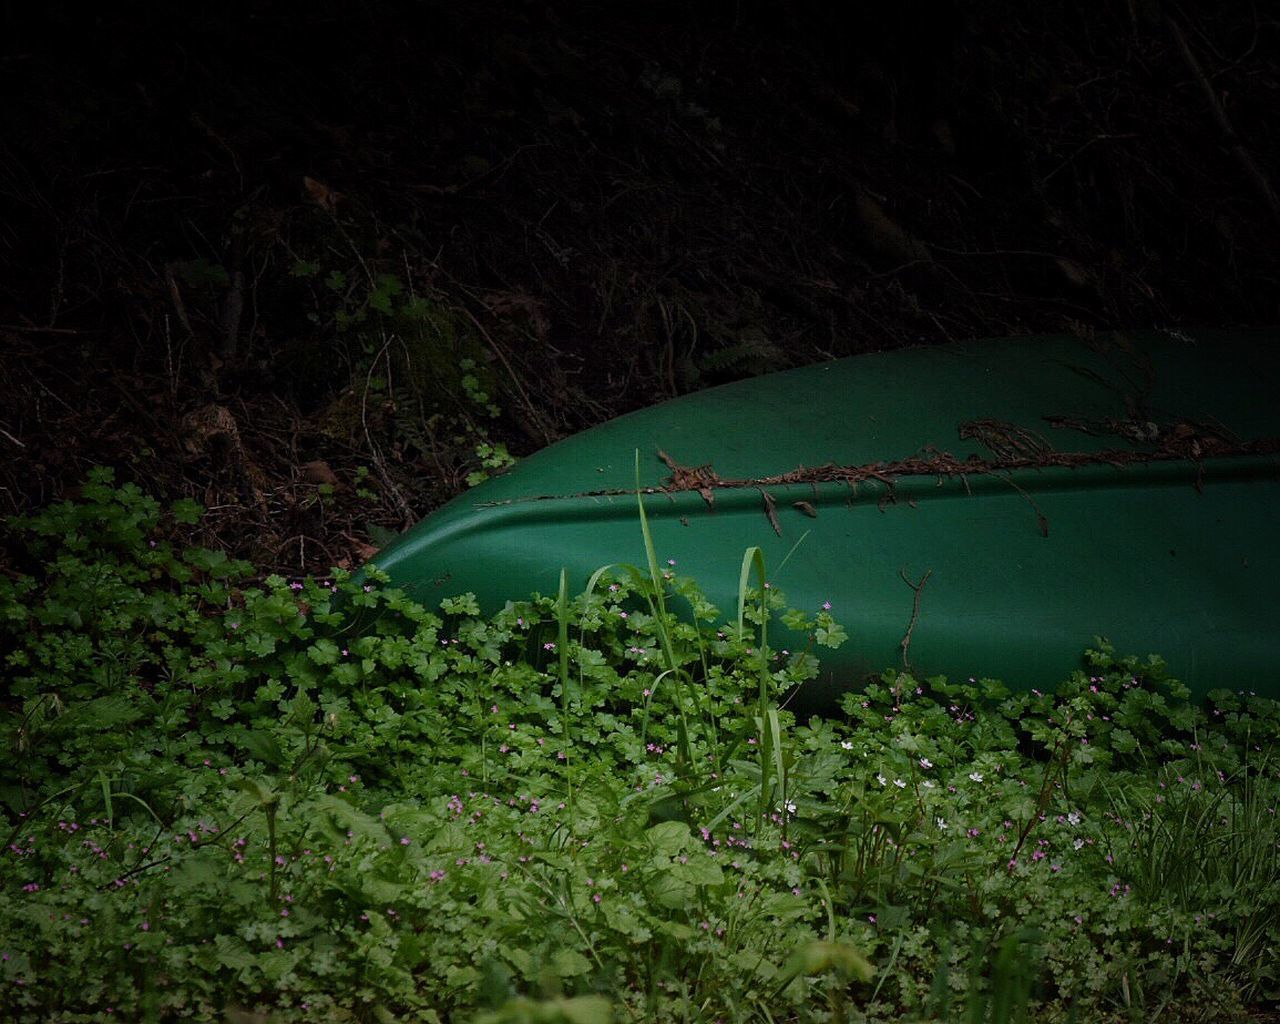 Green Color No People Growth Nature Plant Outdoors Leaf Tranquility Day Beauty In Nature Forest Grass Close-up The Great Outdoors - 2017 EyeEm Awards Waterfront Boat Pond Life Canoe Transportation Hidden Treasure Forgotten Forgotten Places  Green Color Water_collection